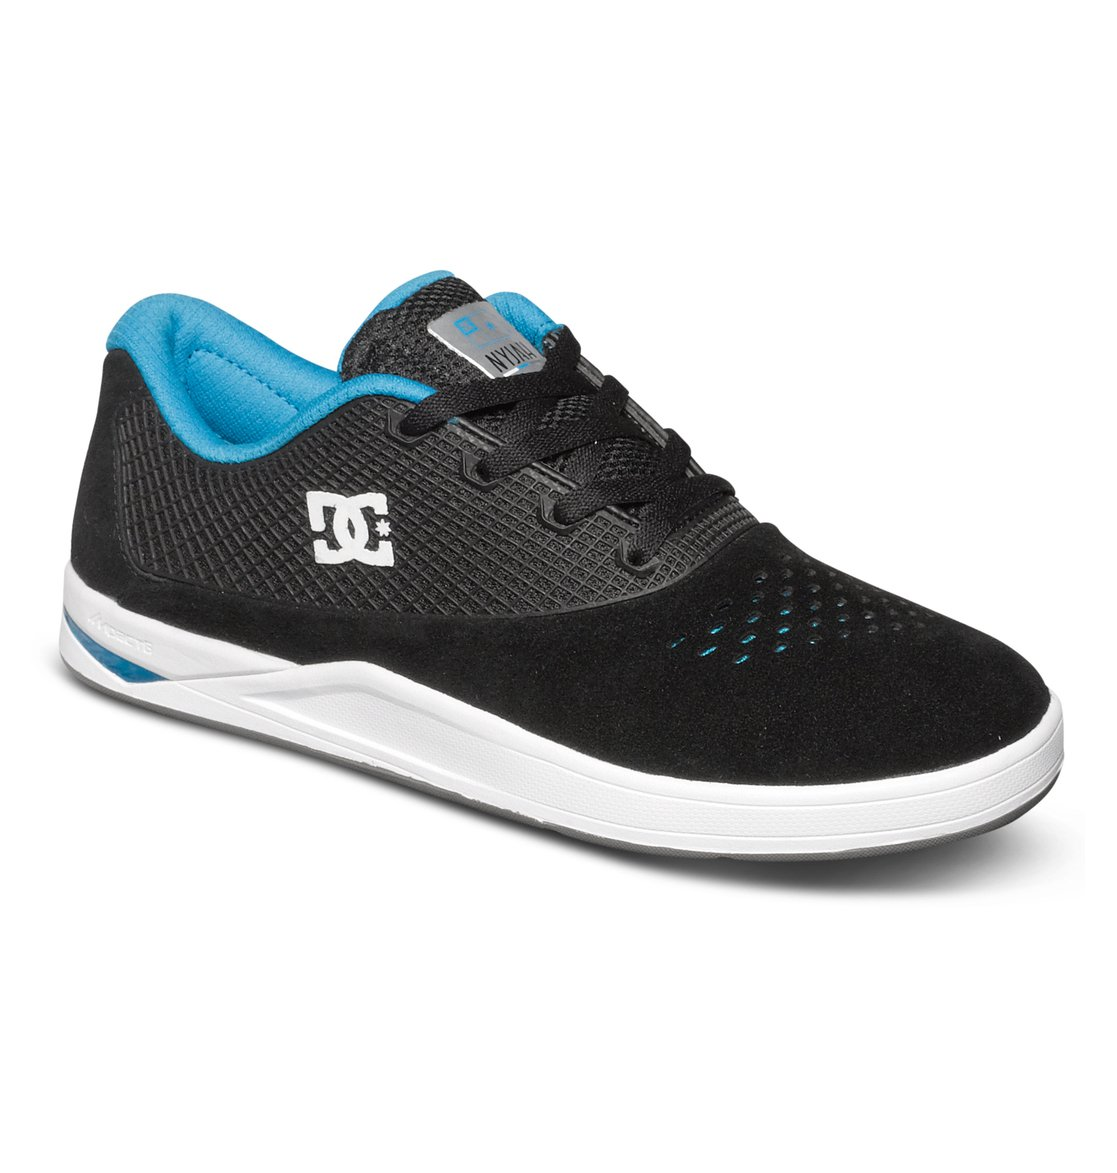 Dc Skate Shoes Size